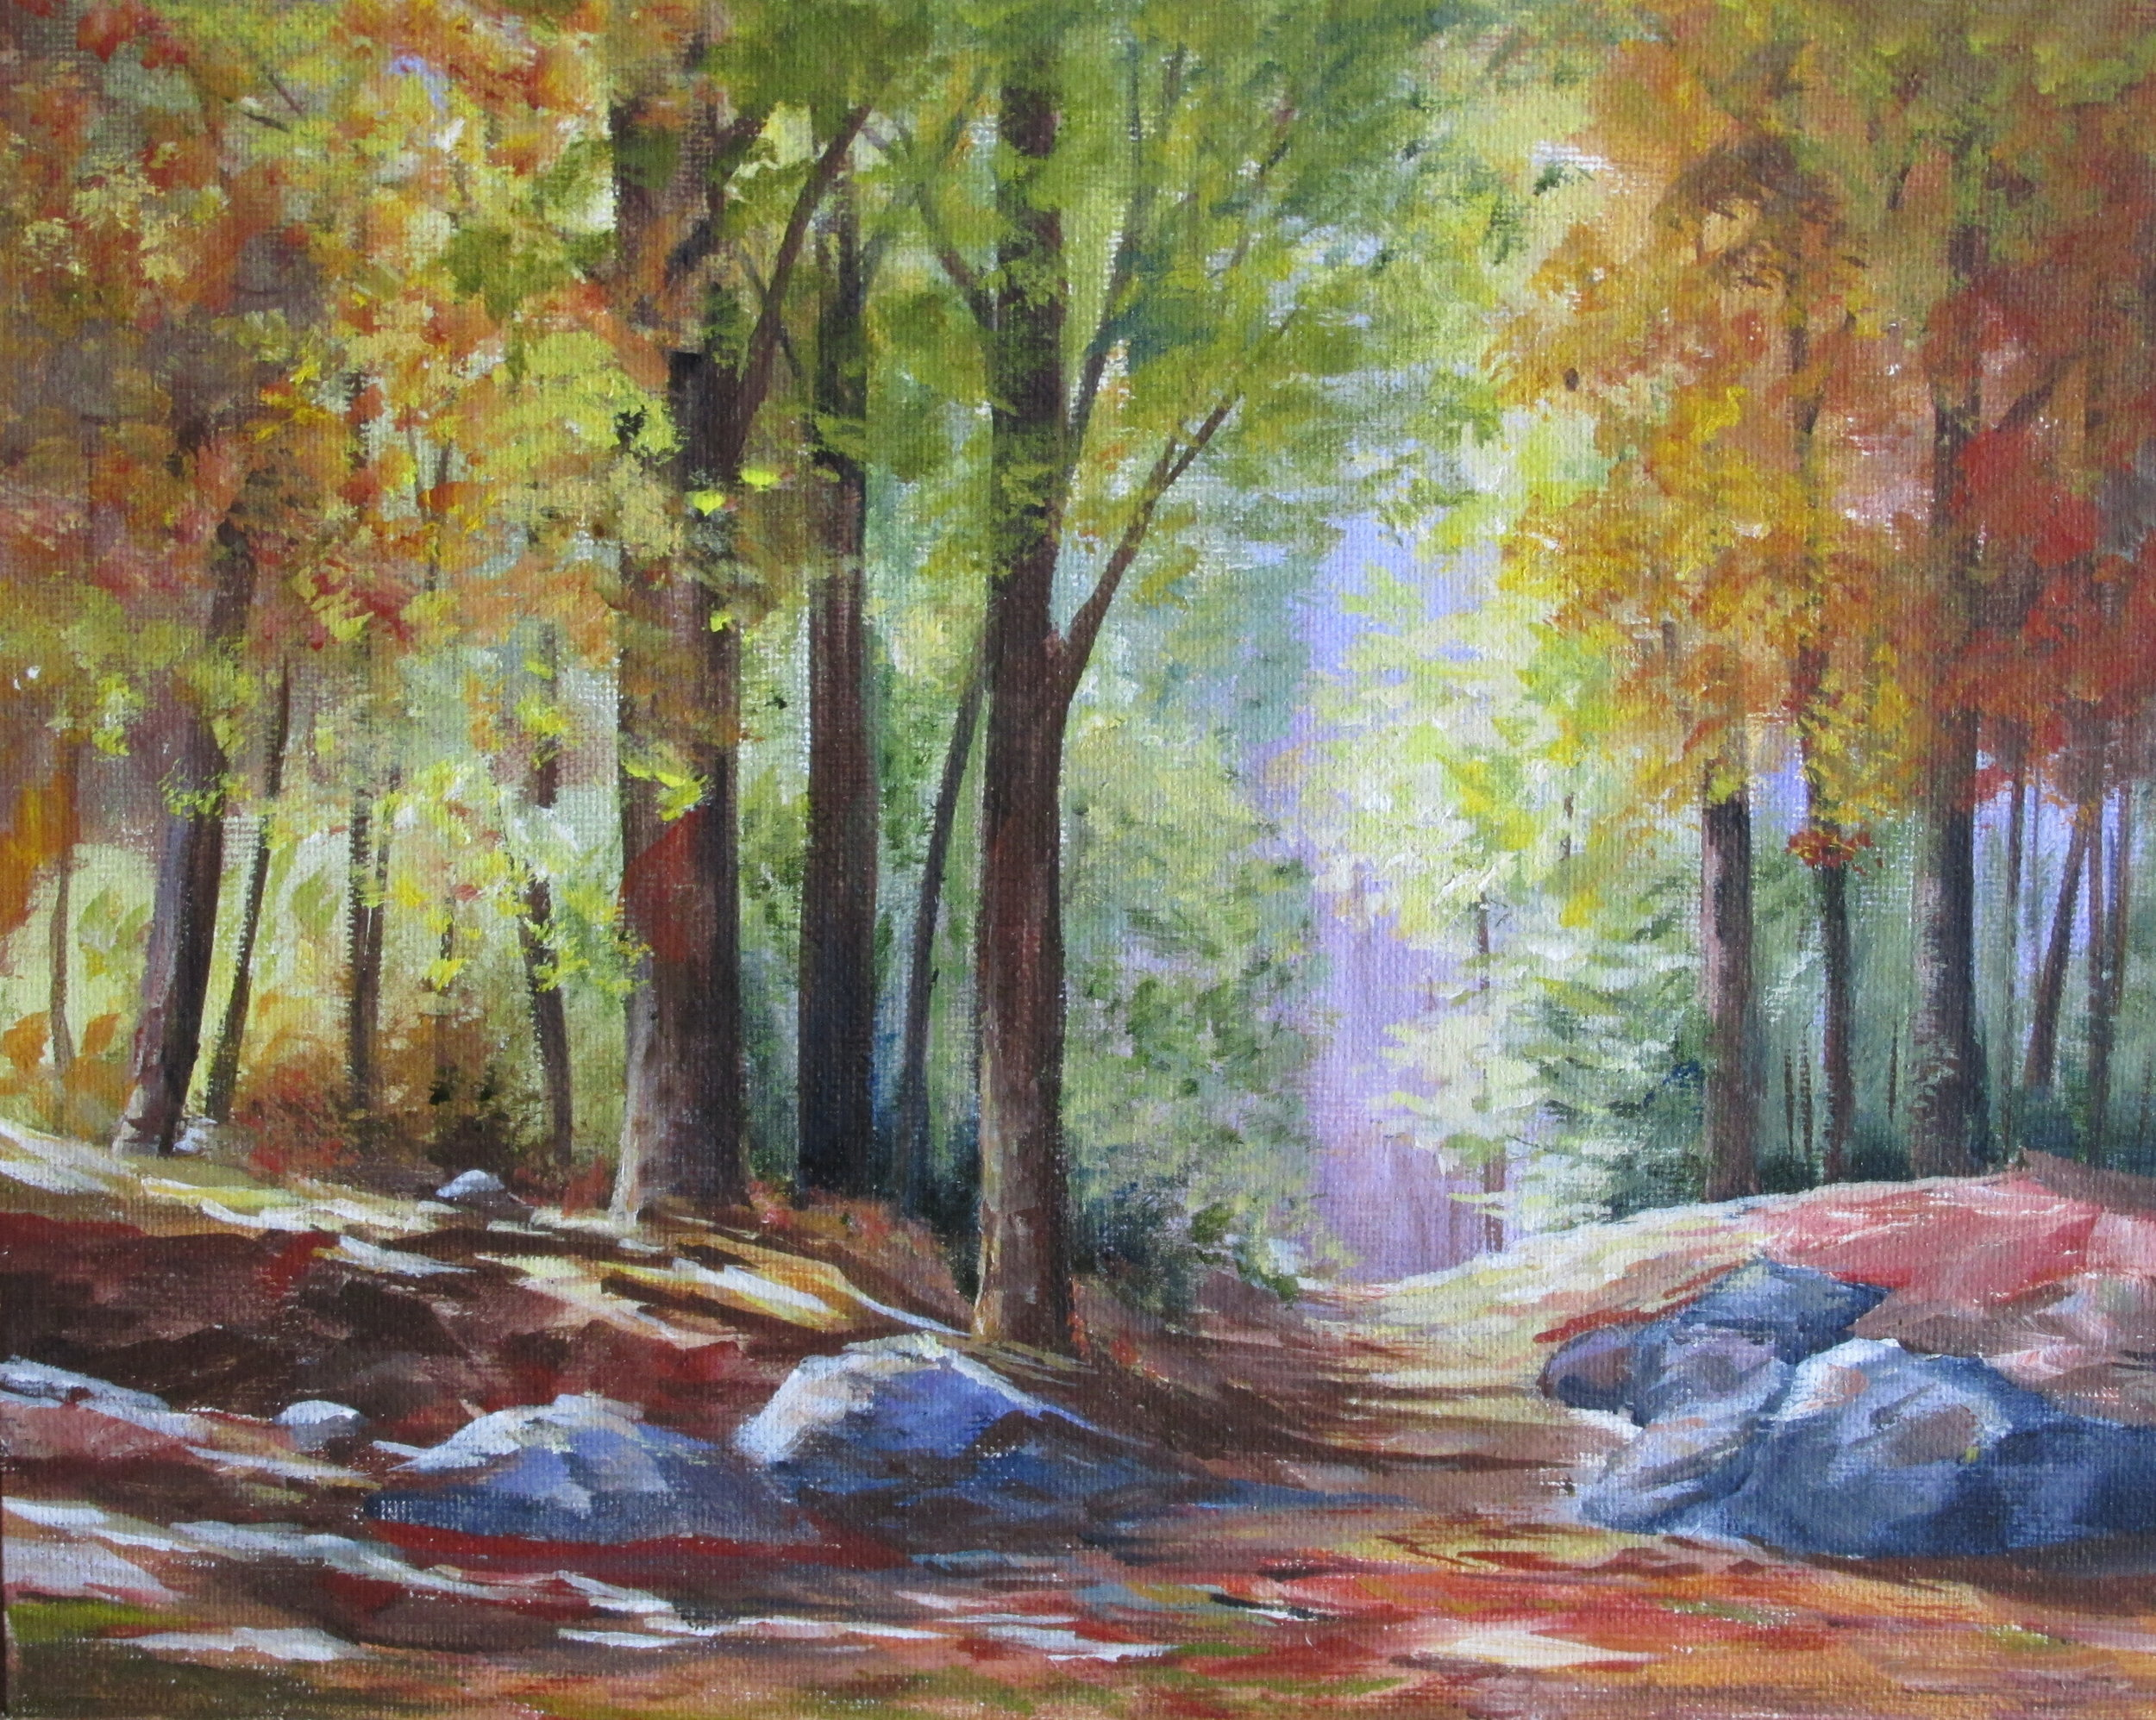 """A Taste of Fall"" by Eileen Belanger"